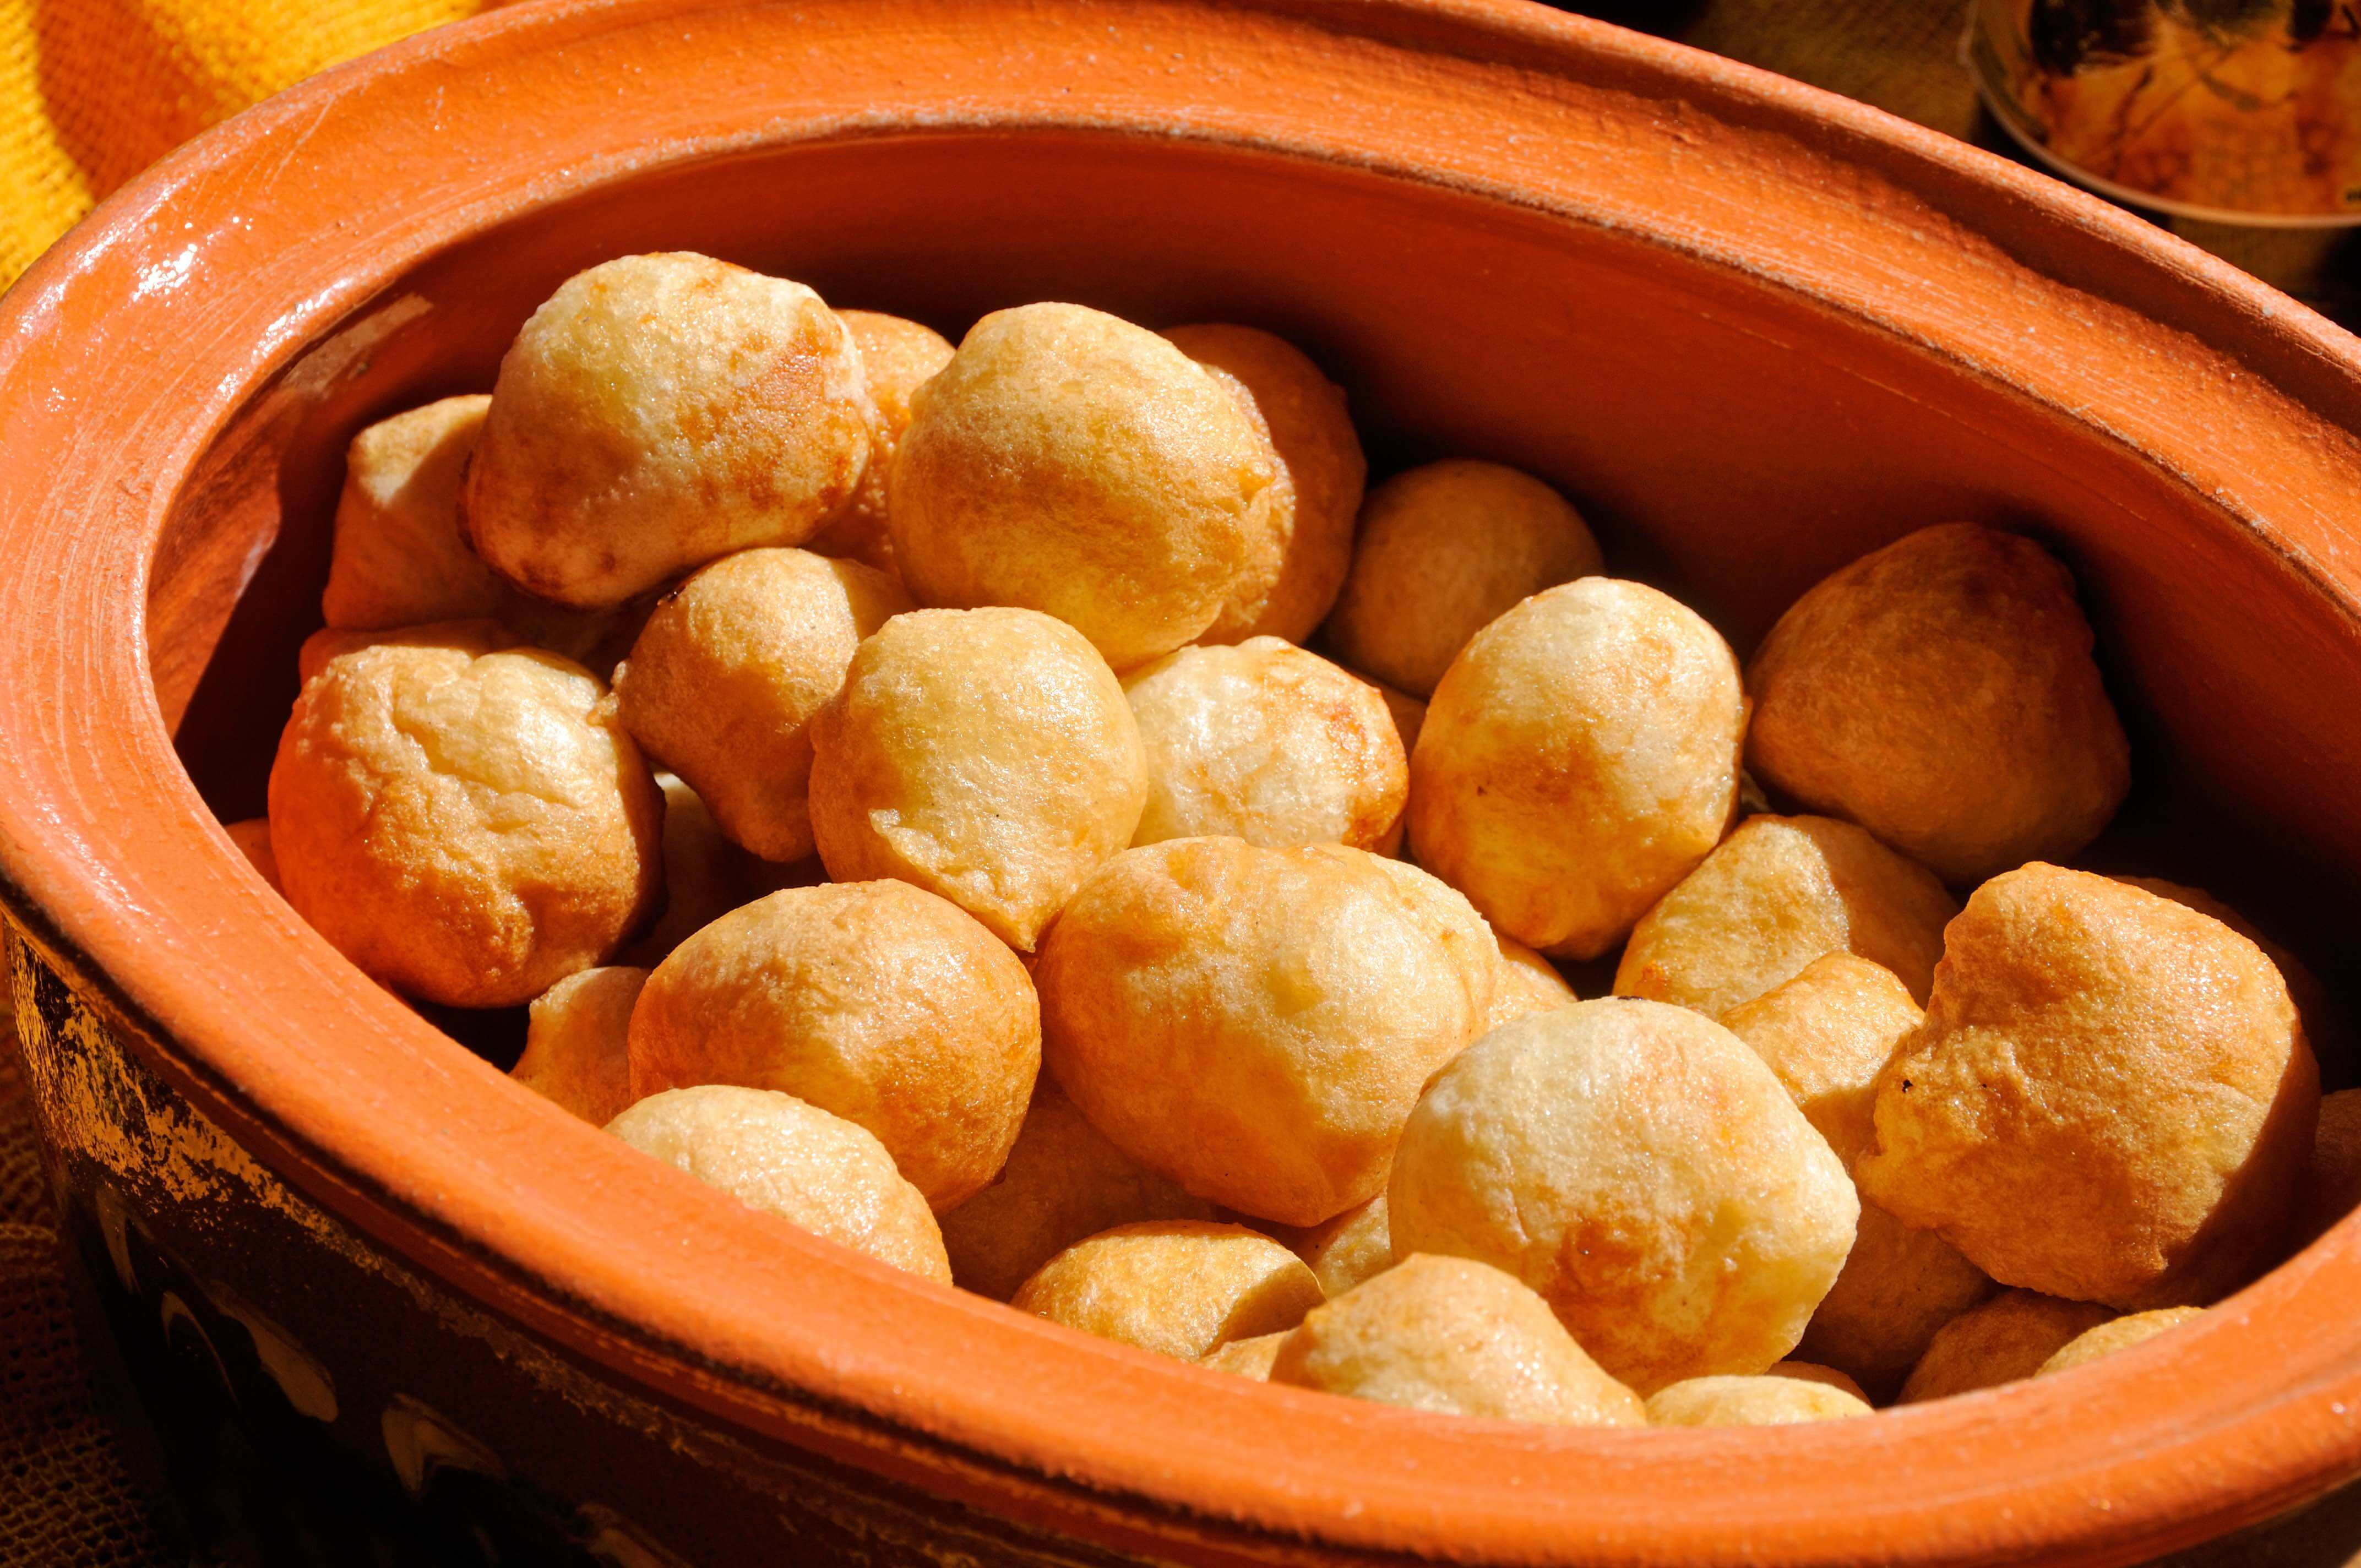 Popular local snack priganice, which is served either savoury or sweet, with fresh local cheese, honey, or jam.